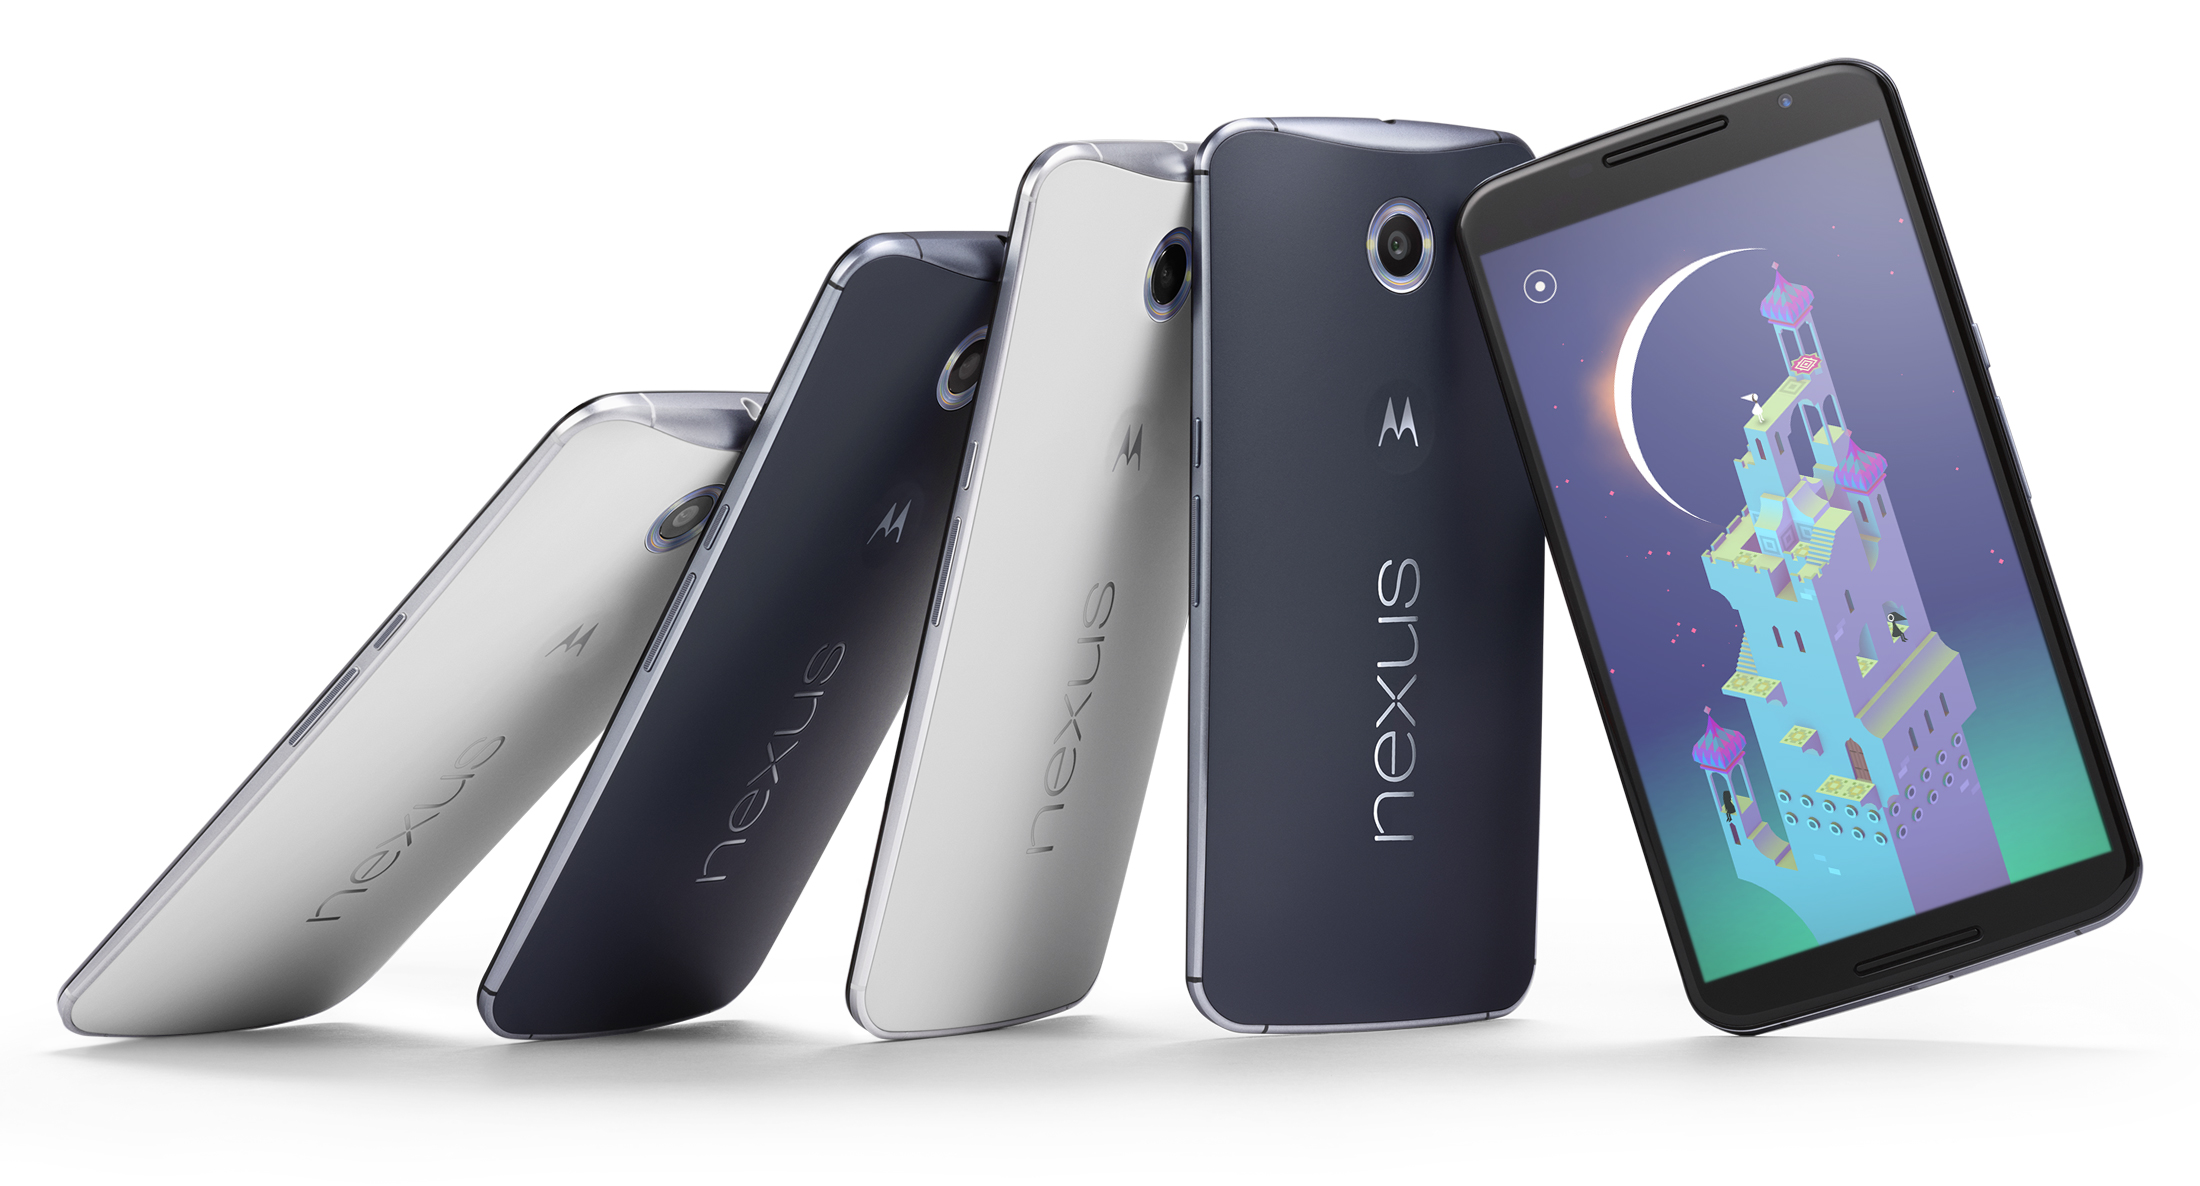 The Nexus 6 might be significantly delayed in certain major markets